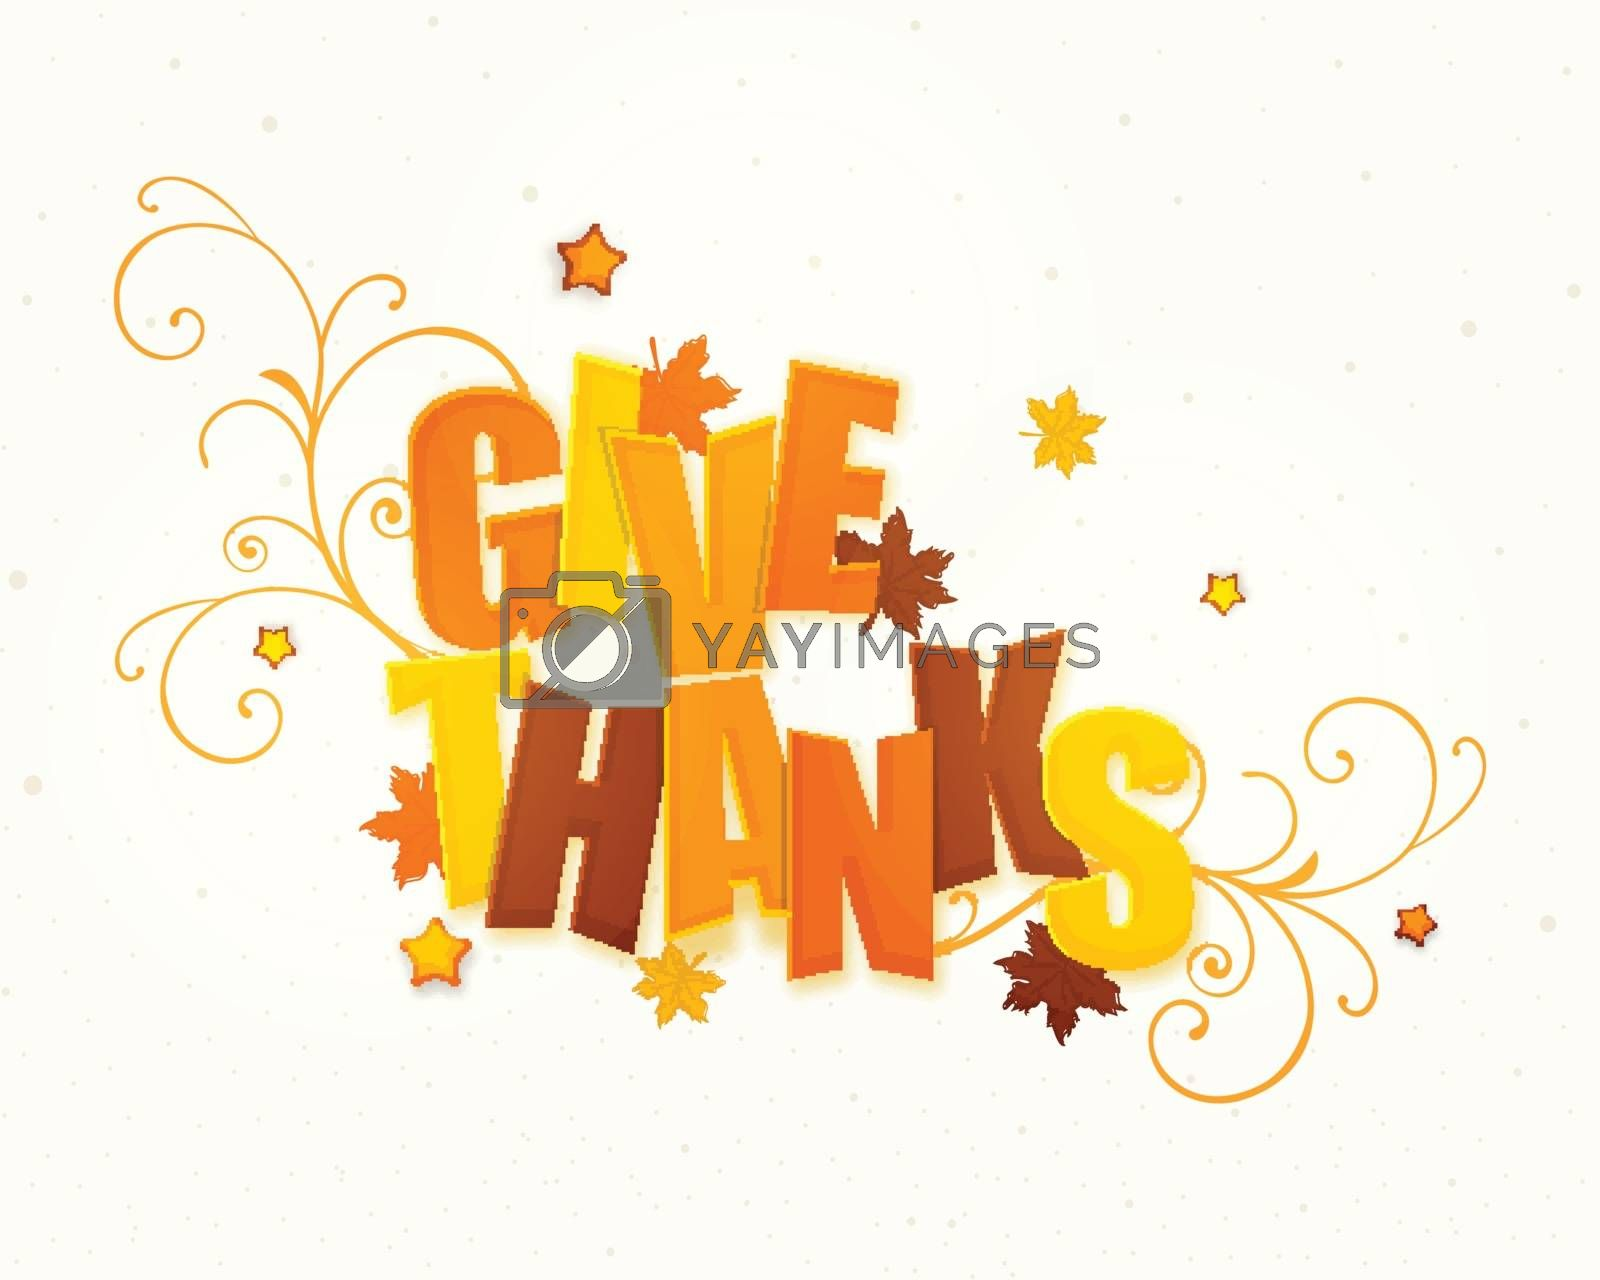 Stylish Text for Thanksgiving Day celebration. by aispl